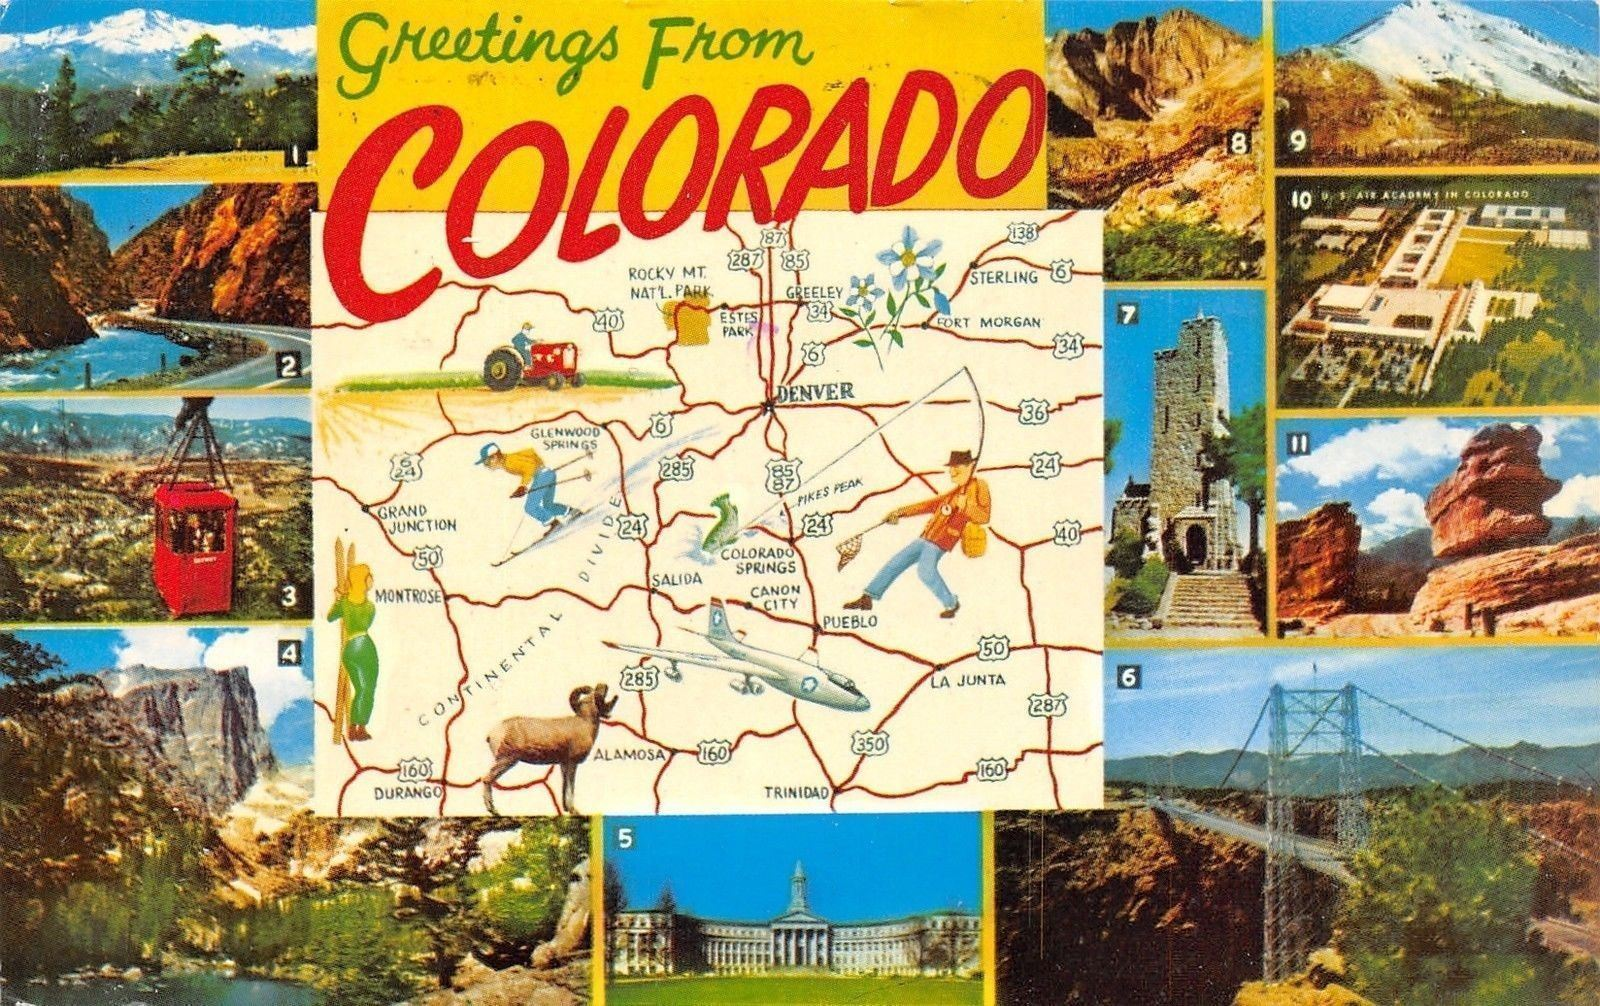 Colorado~State Map~Sterling to LaJunta~Durango to Greeley ... on west vail map, pagosa map, manitou springs co map, montrose map, greenwood village map, denver map, eagle map, glenwood canyon map, colorado map, broomfield map, newport news map, las vegas map, arvada map, lochbuie map, aspen map, fairfield map, saguache map, steamboat area map, norman map,